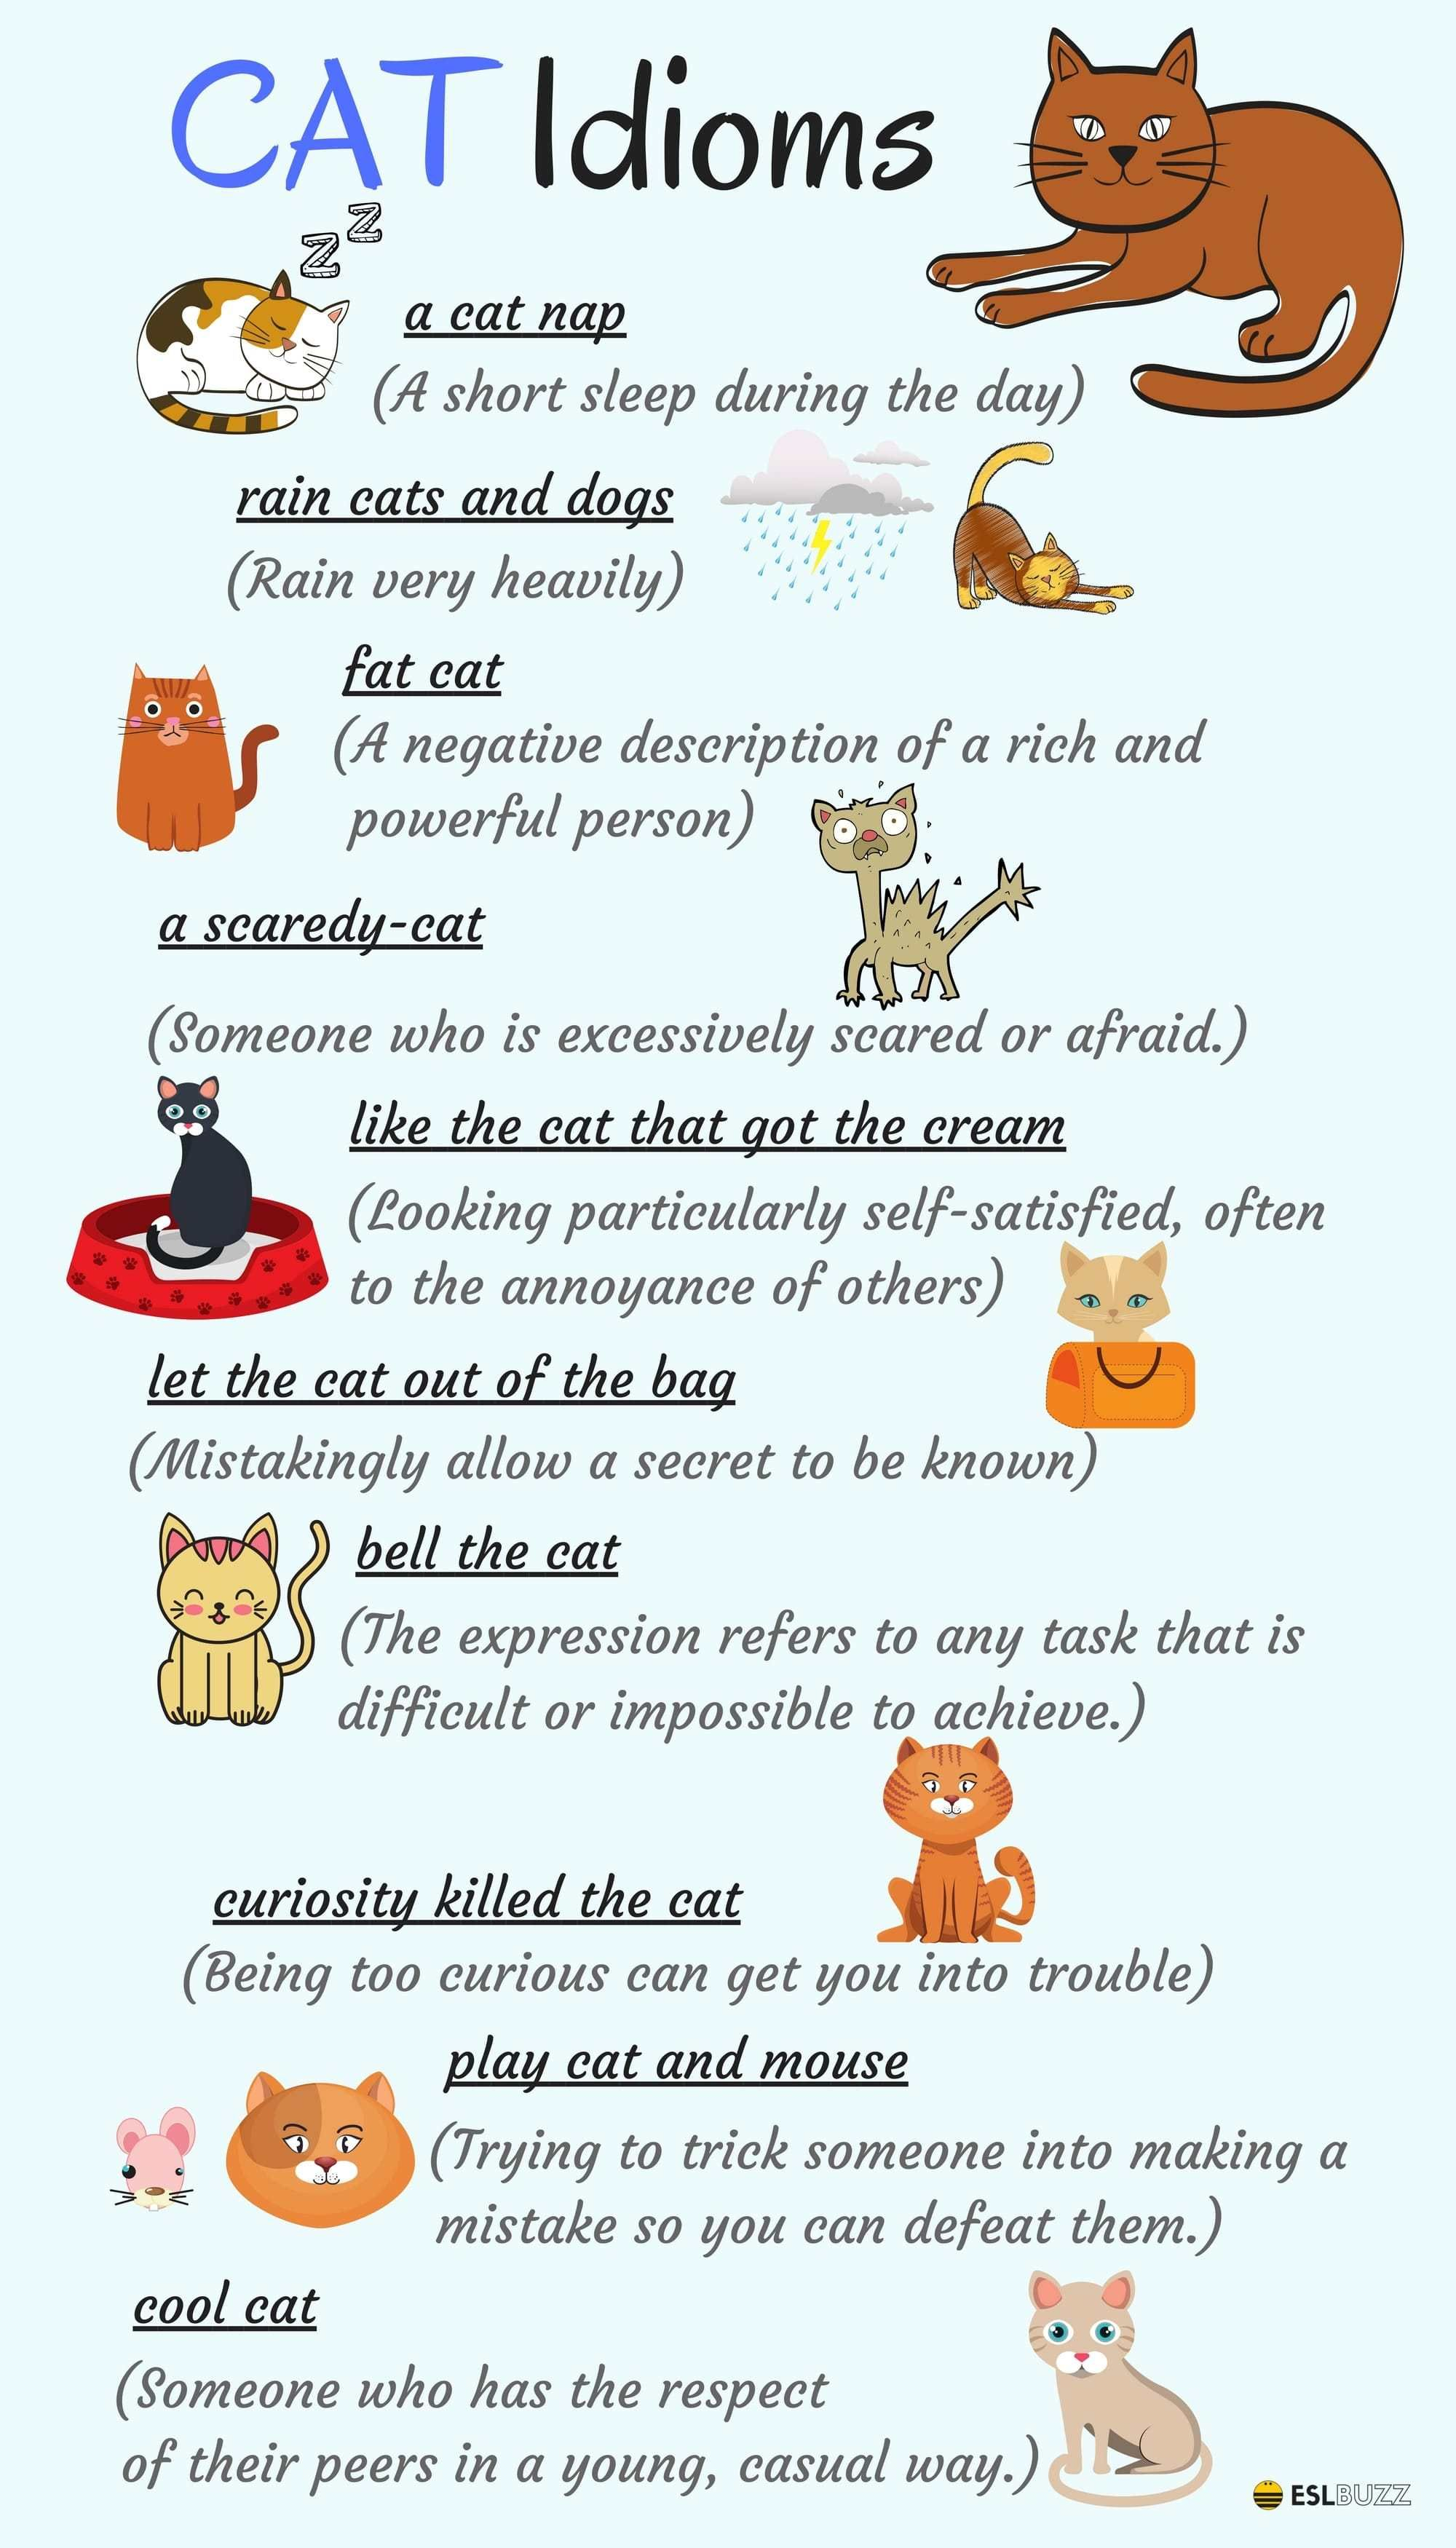 Animal Idioms About Cats And Their Meanings In English